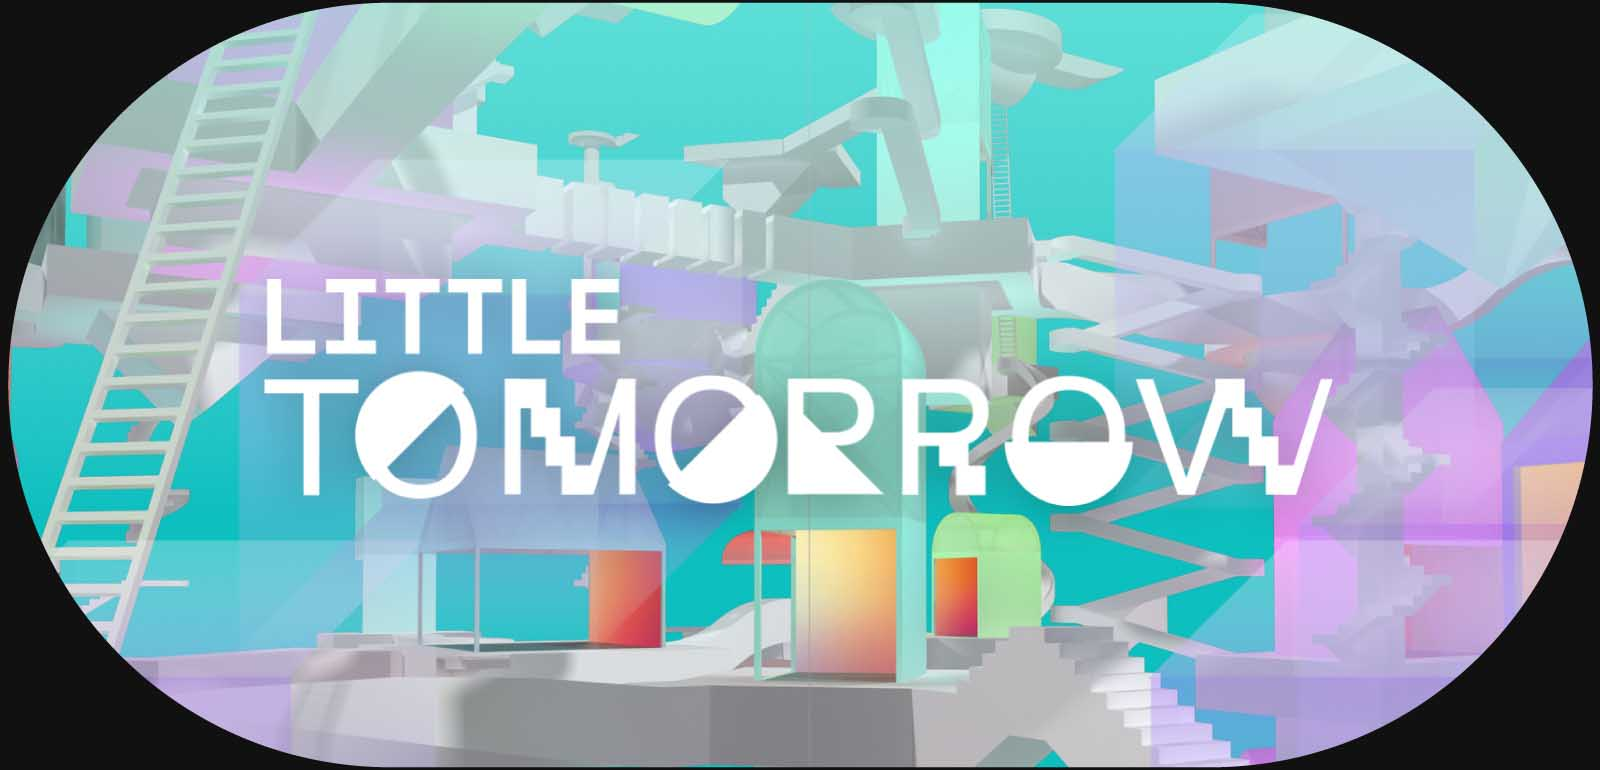 Little Tomorrow - Create tomorrow today together.